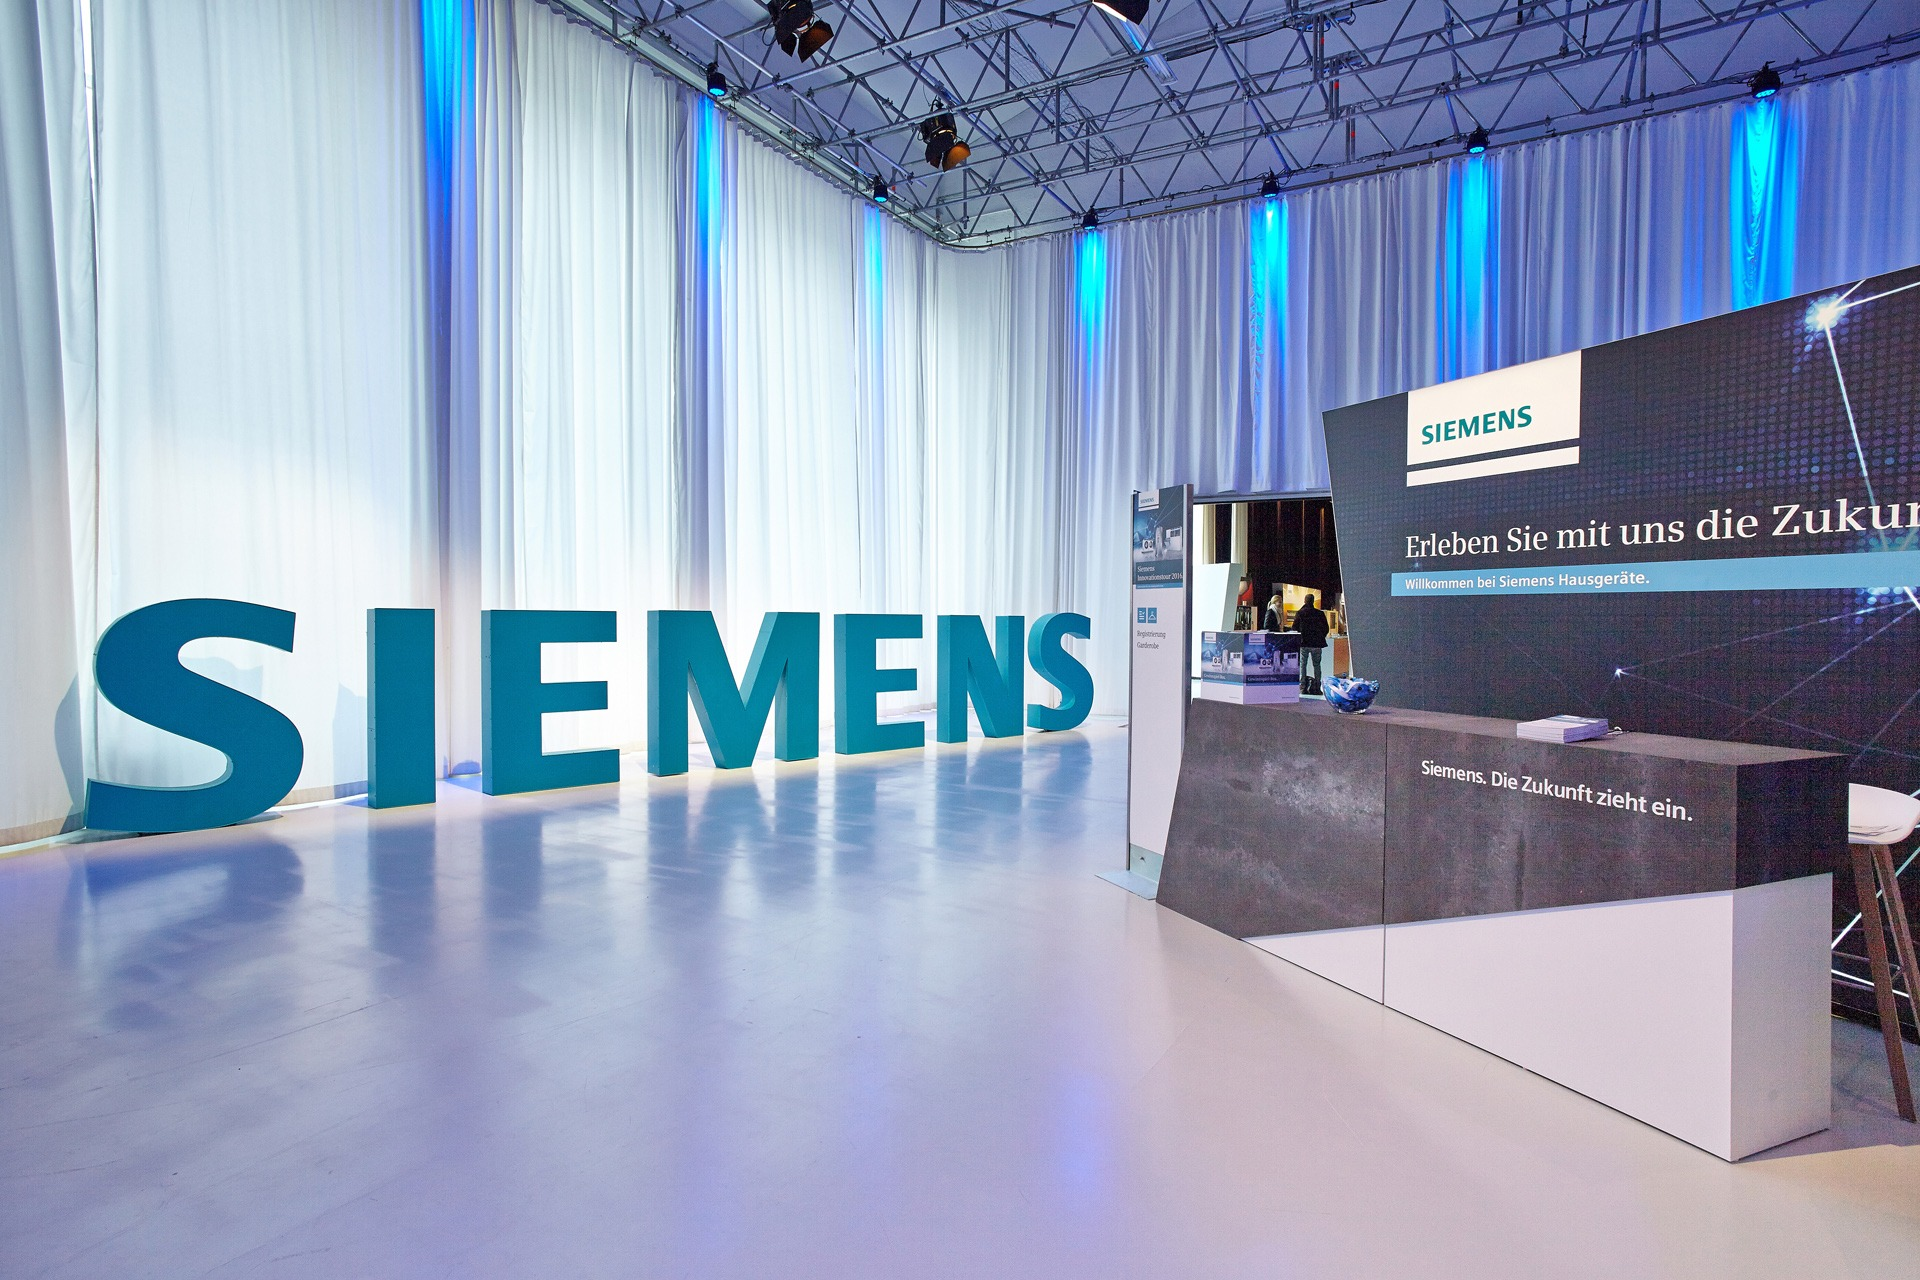 Siemens Innovationstour